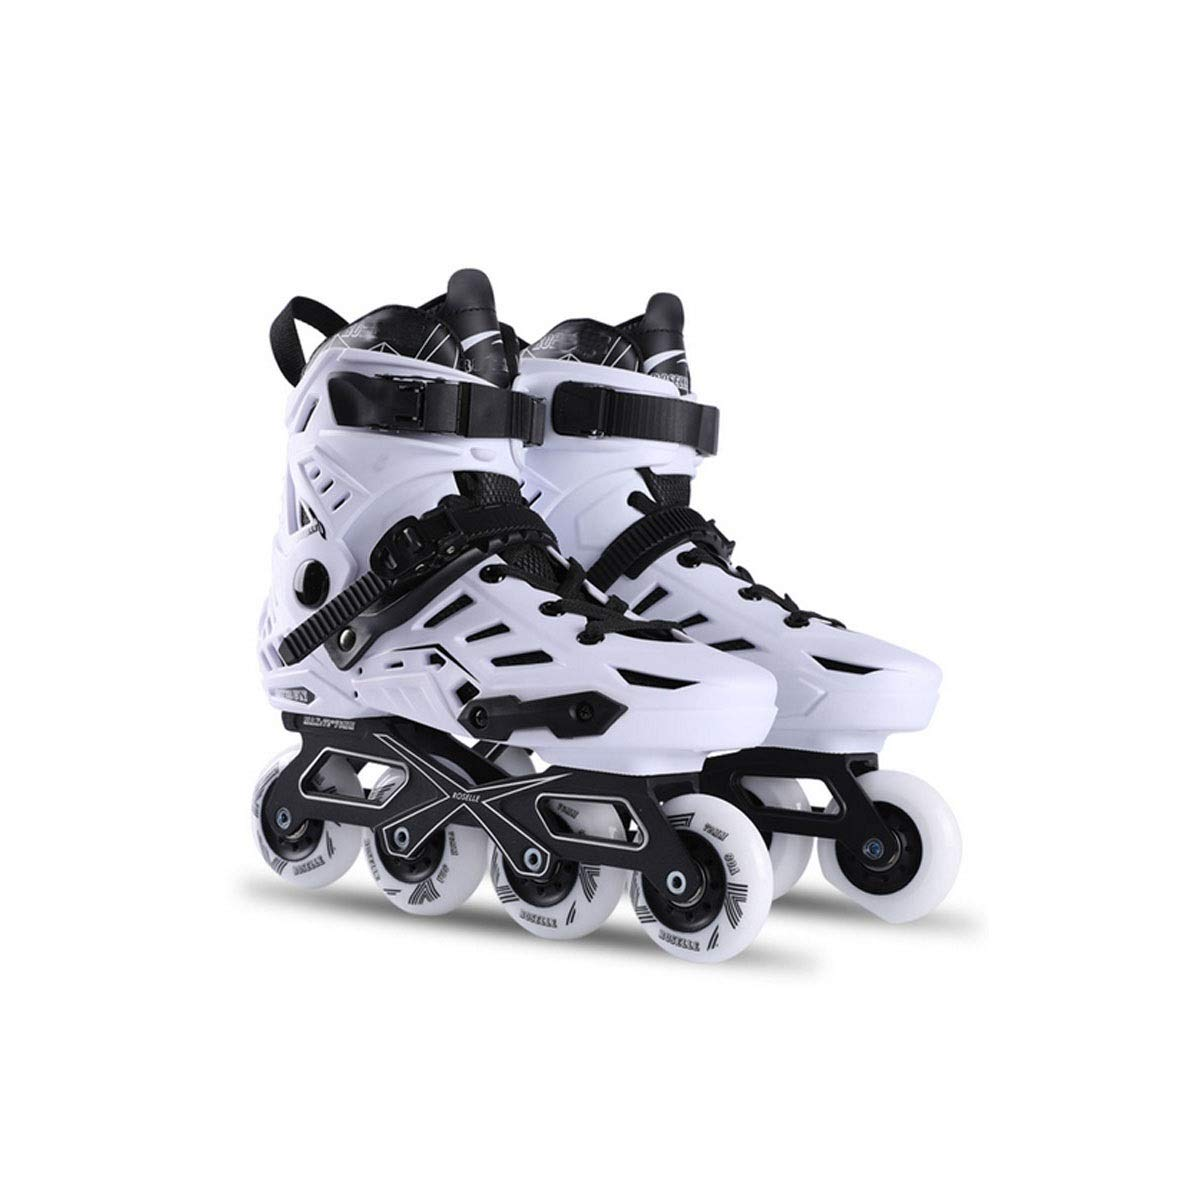 Hengxiang Fitness Inline Skates, Kid's Outdoor Skates,One-Piece Luxury Aluminum Alloy Laser Engraving Bracket, PP Impact Resistant Material, Excellent Gift for Teenagers, Black Workout Roller Skates